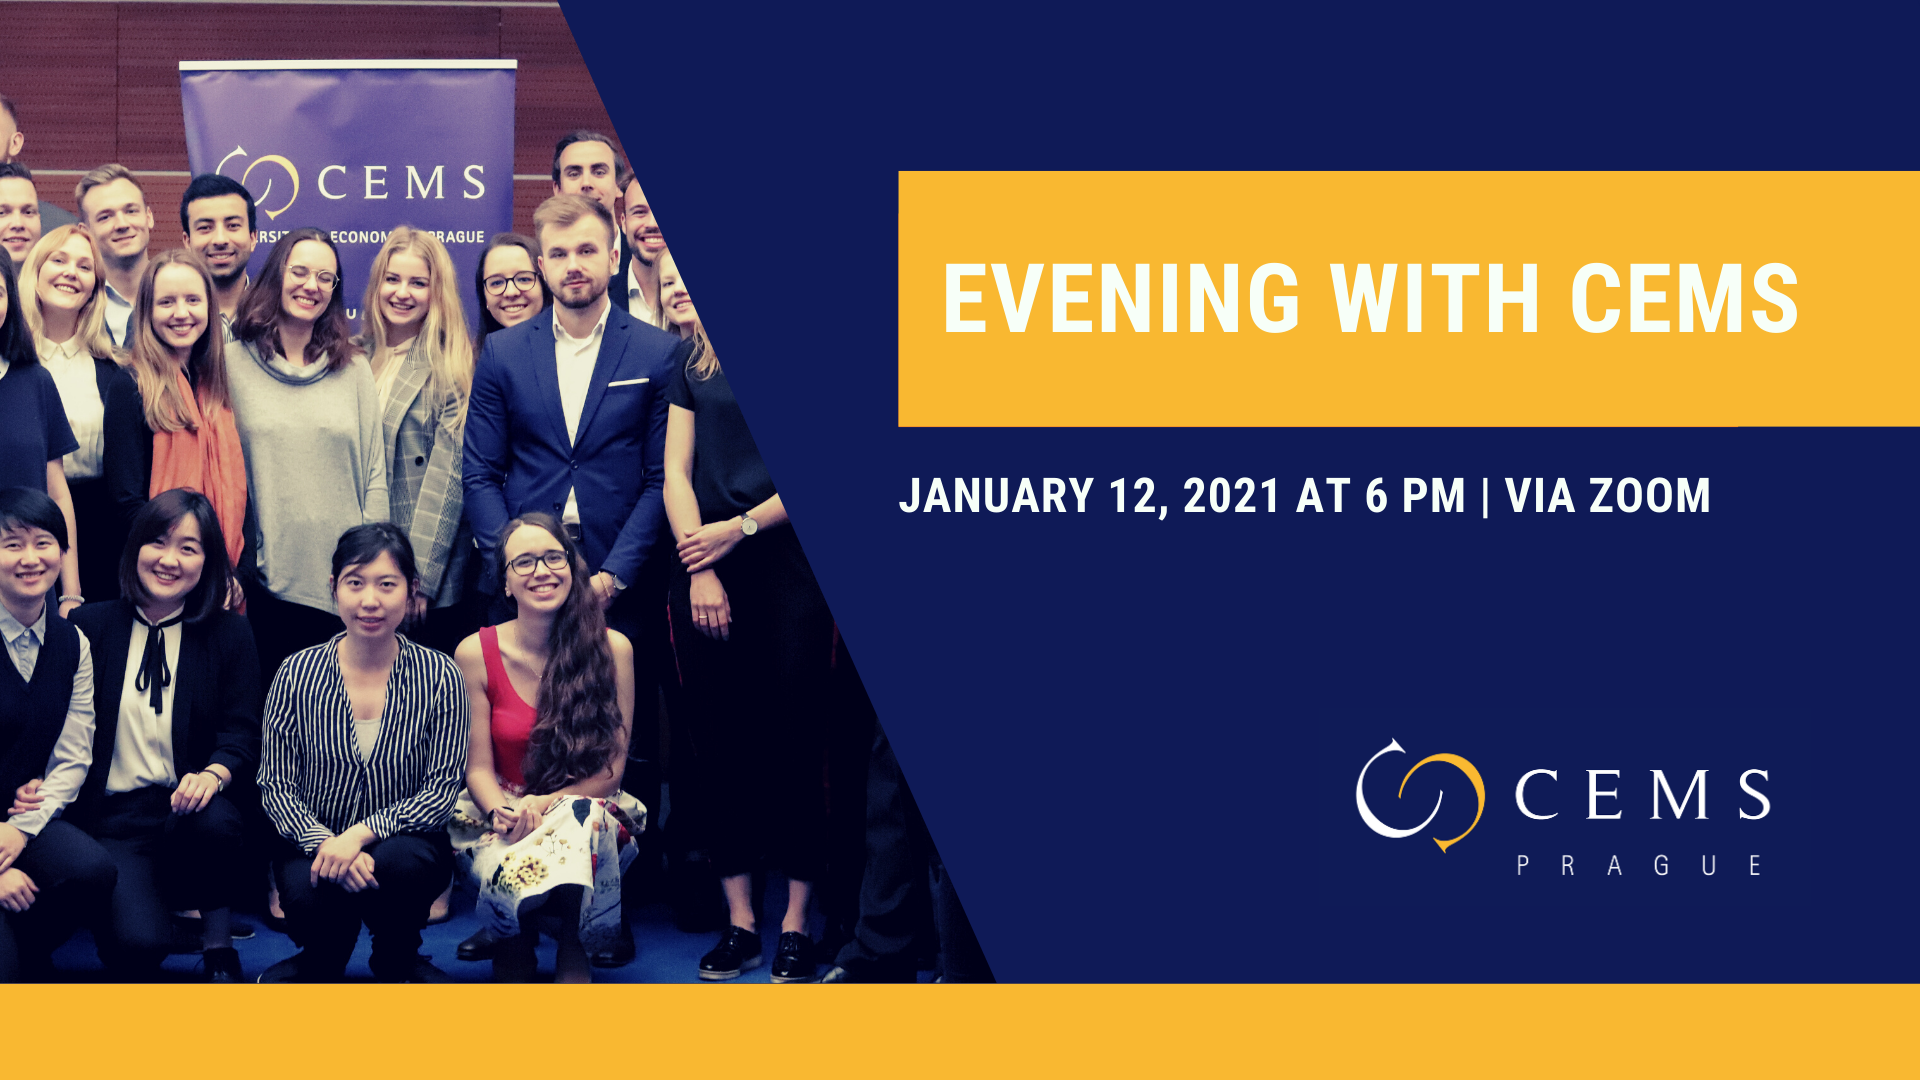 Interested in CEMS? Join Us Online for Evening with CEMS /January 12, 2021/